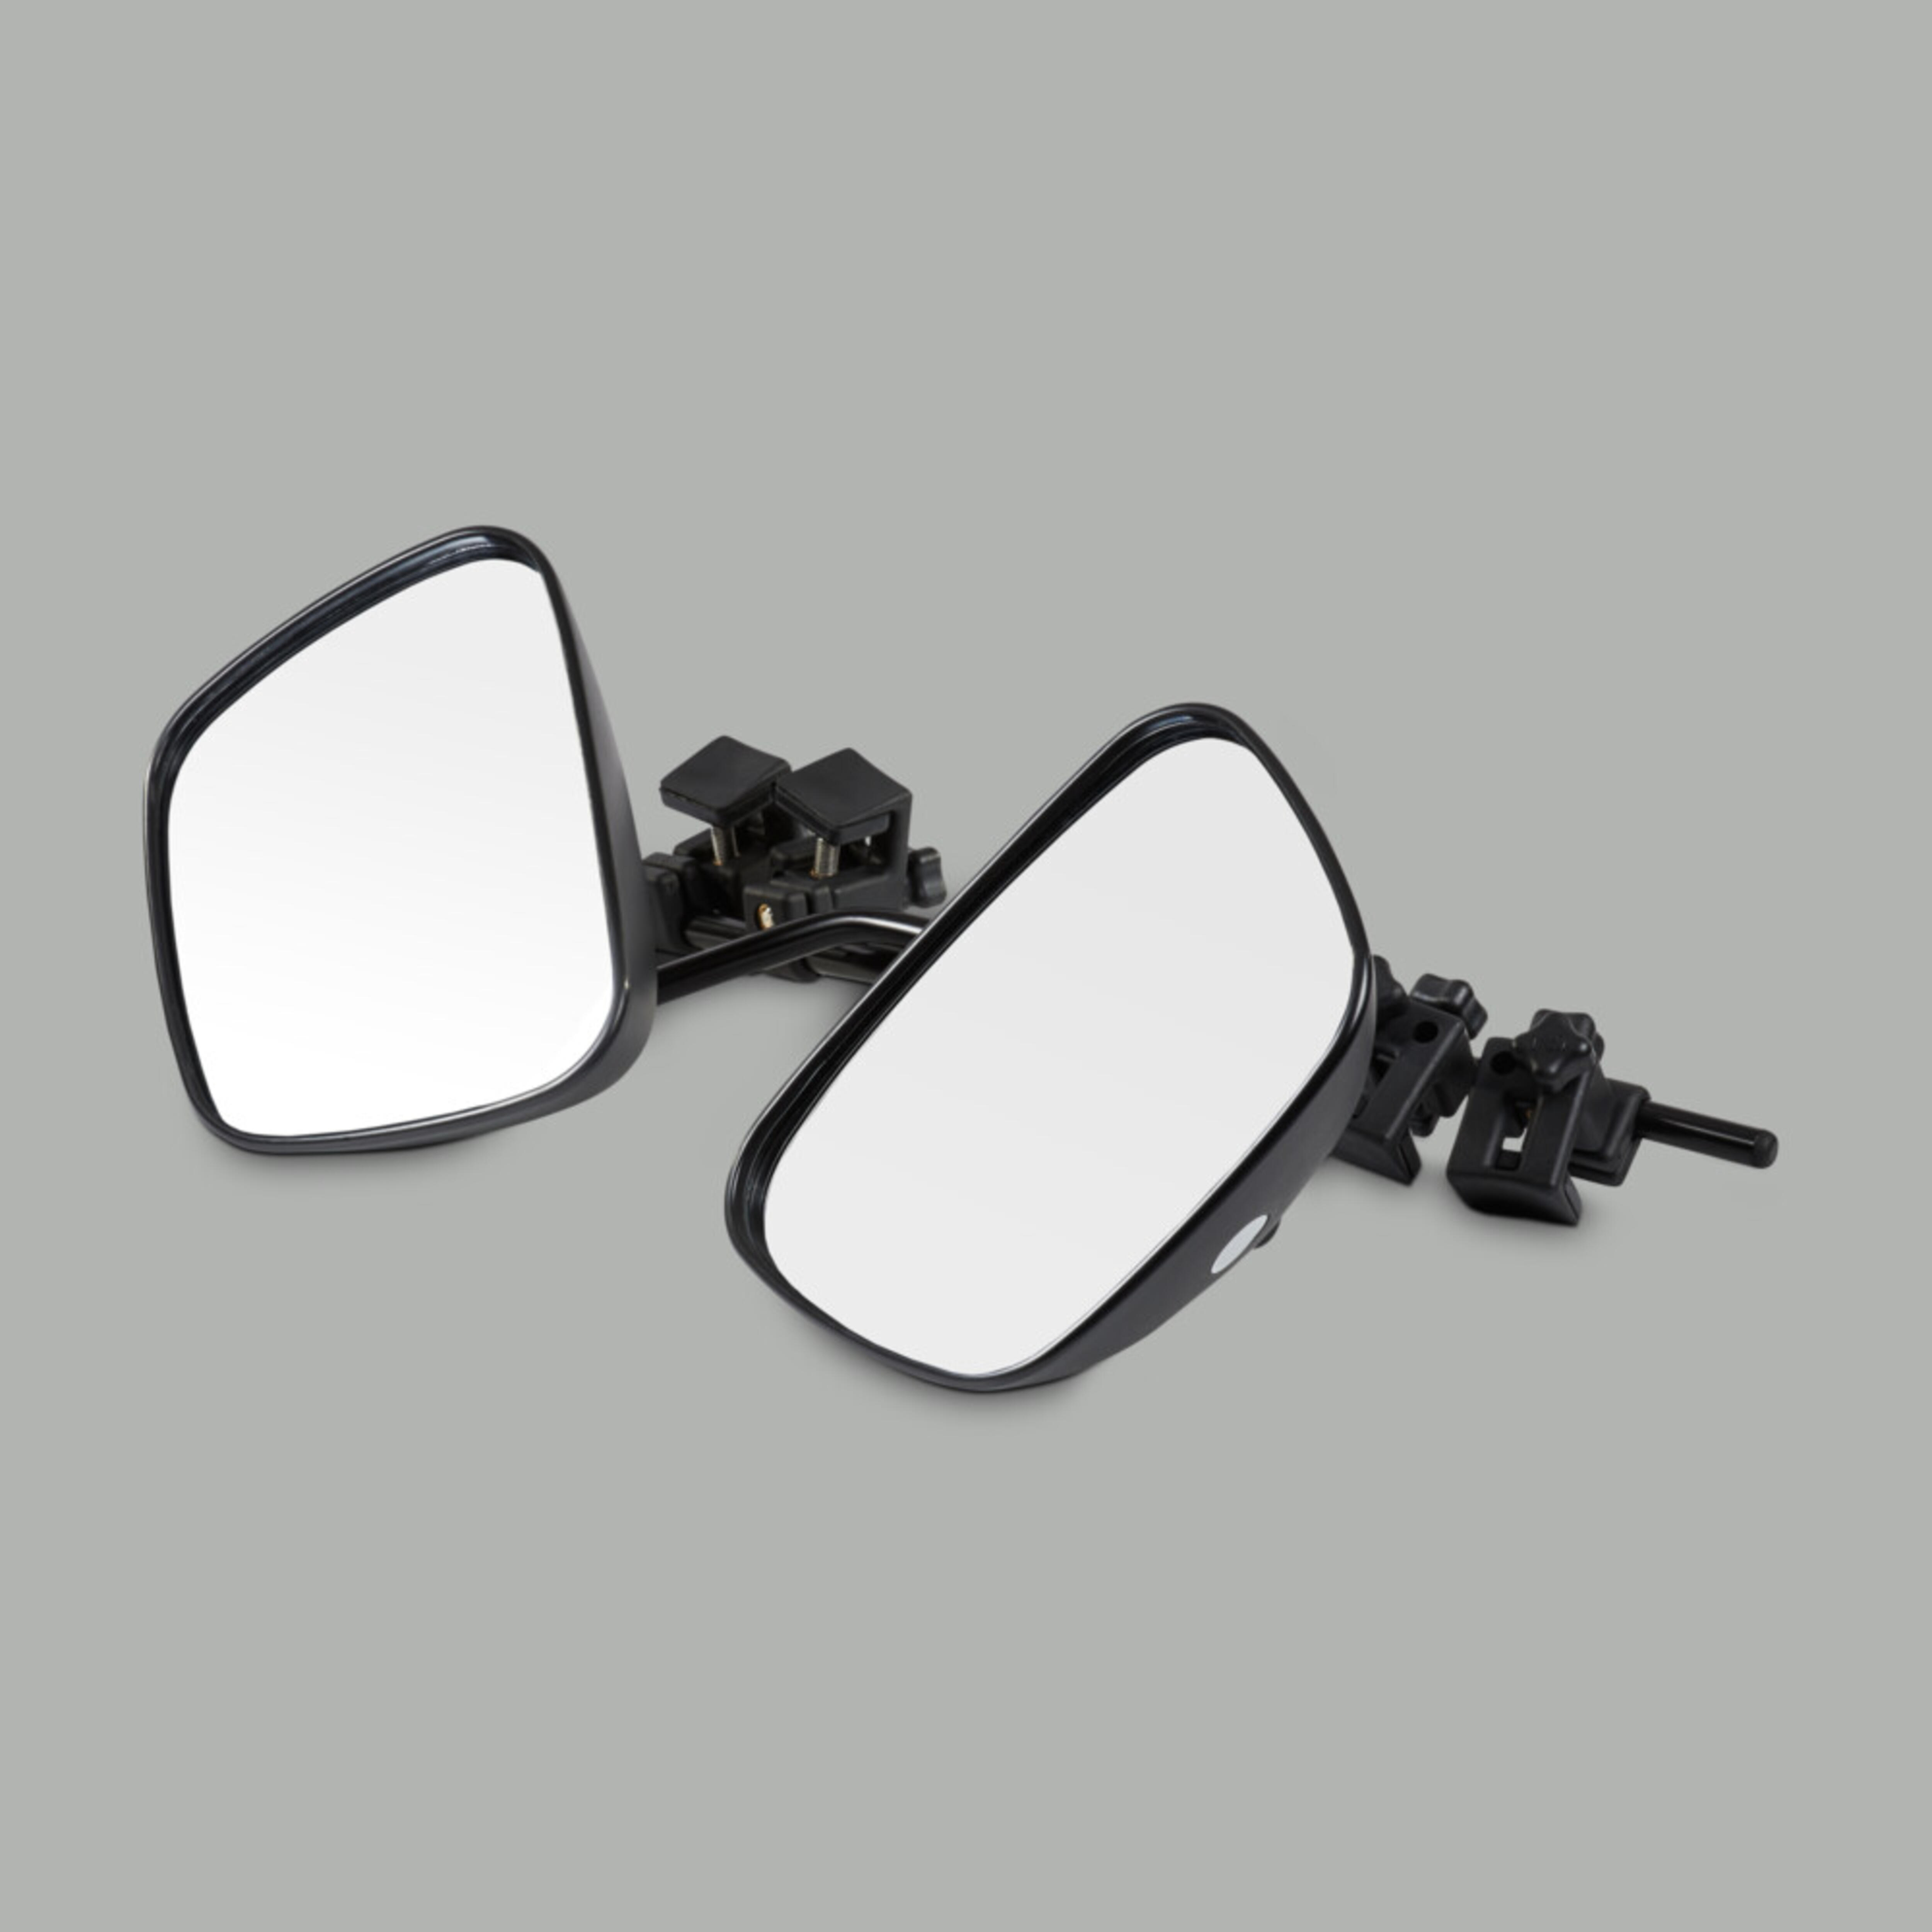 Milenco Grand Aero extra wide mirror